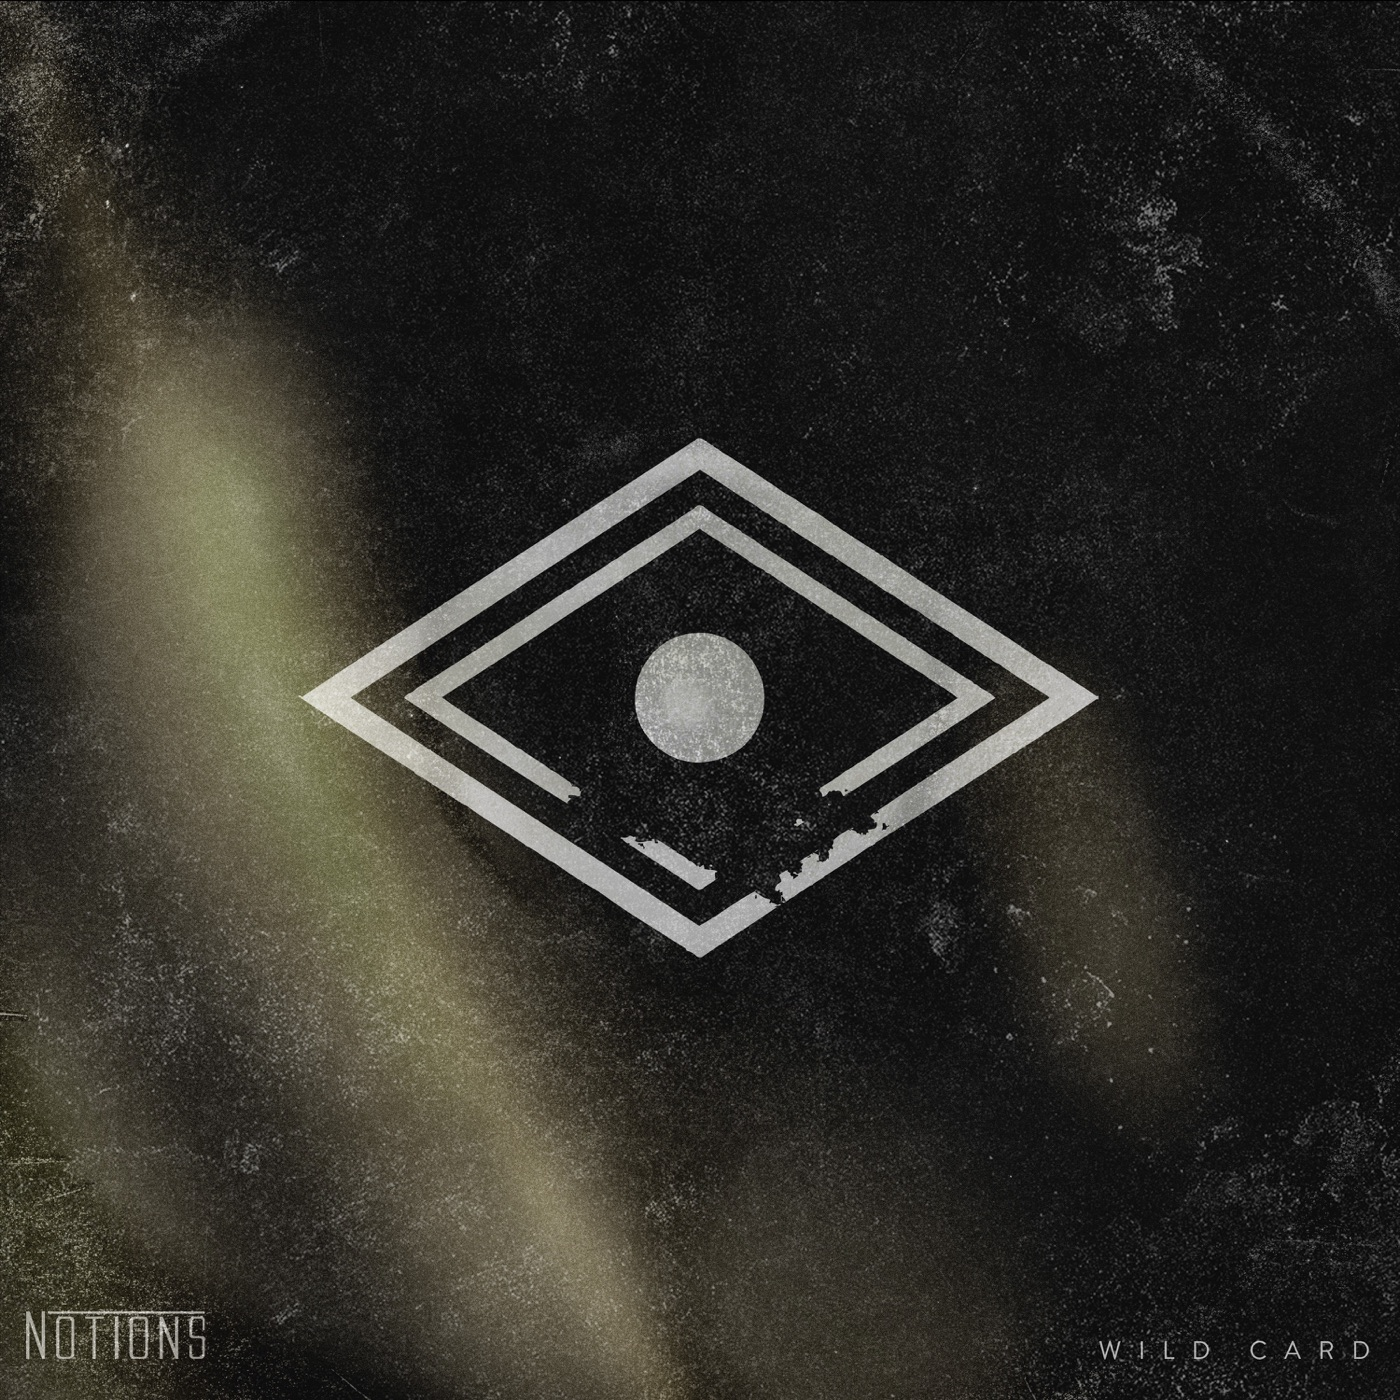 Notions - Wild Card [single] (2018)